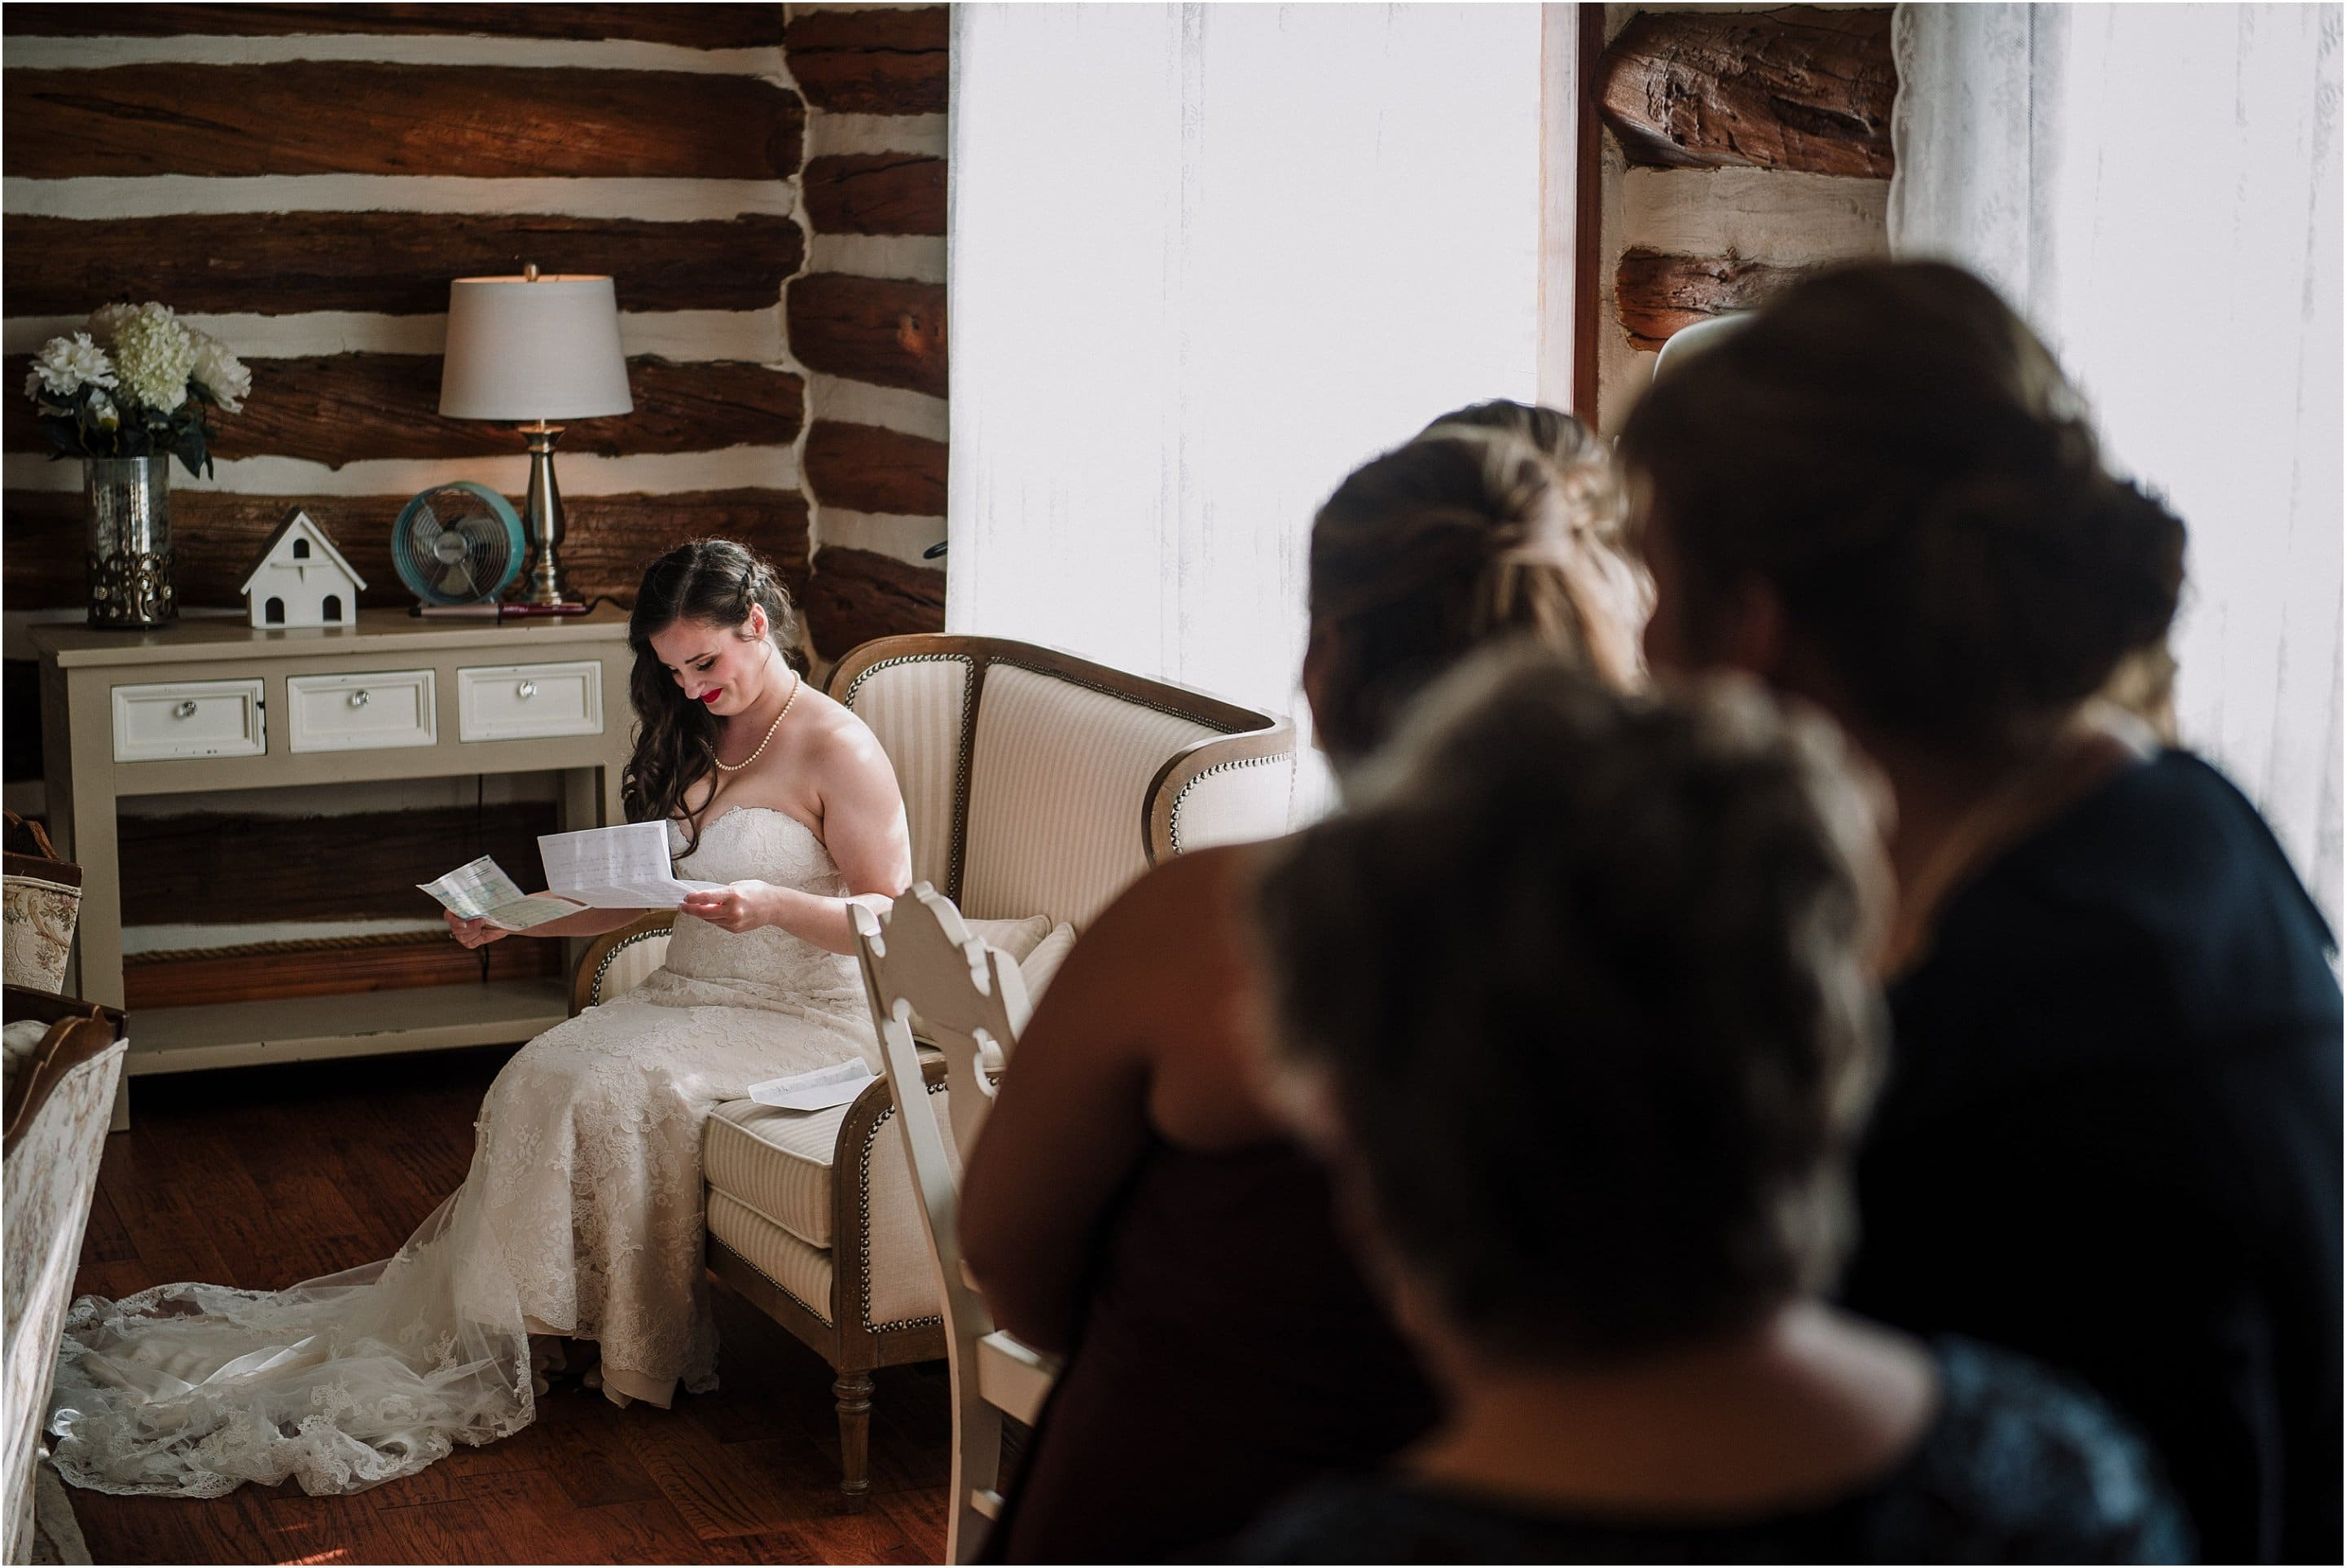 The bride reading a love note from her groom on her wedding day. Photo by Cindy Lottes Photography